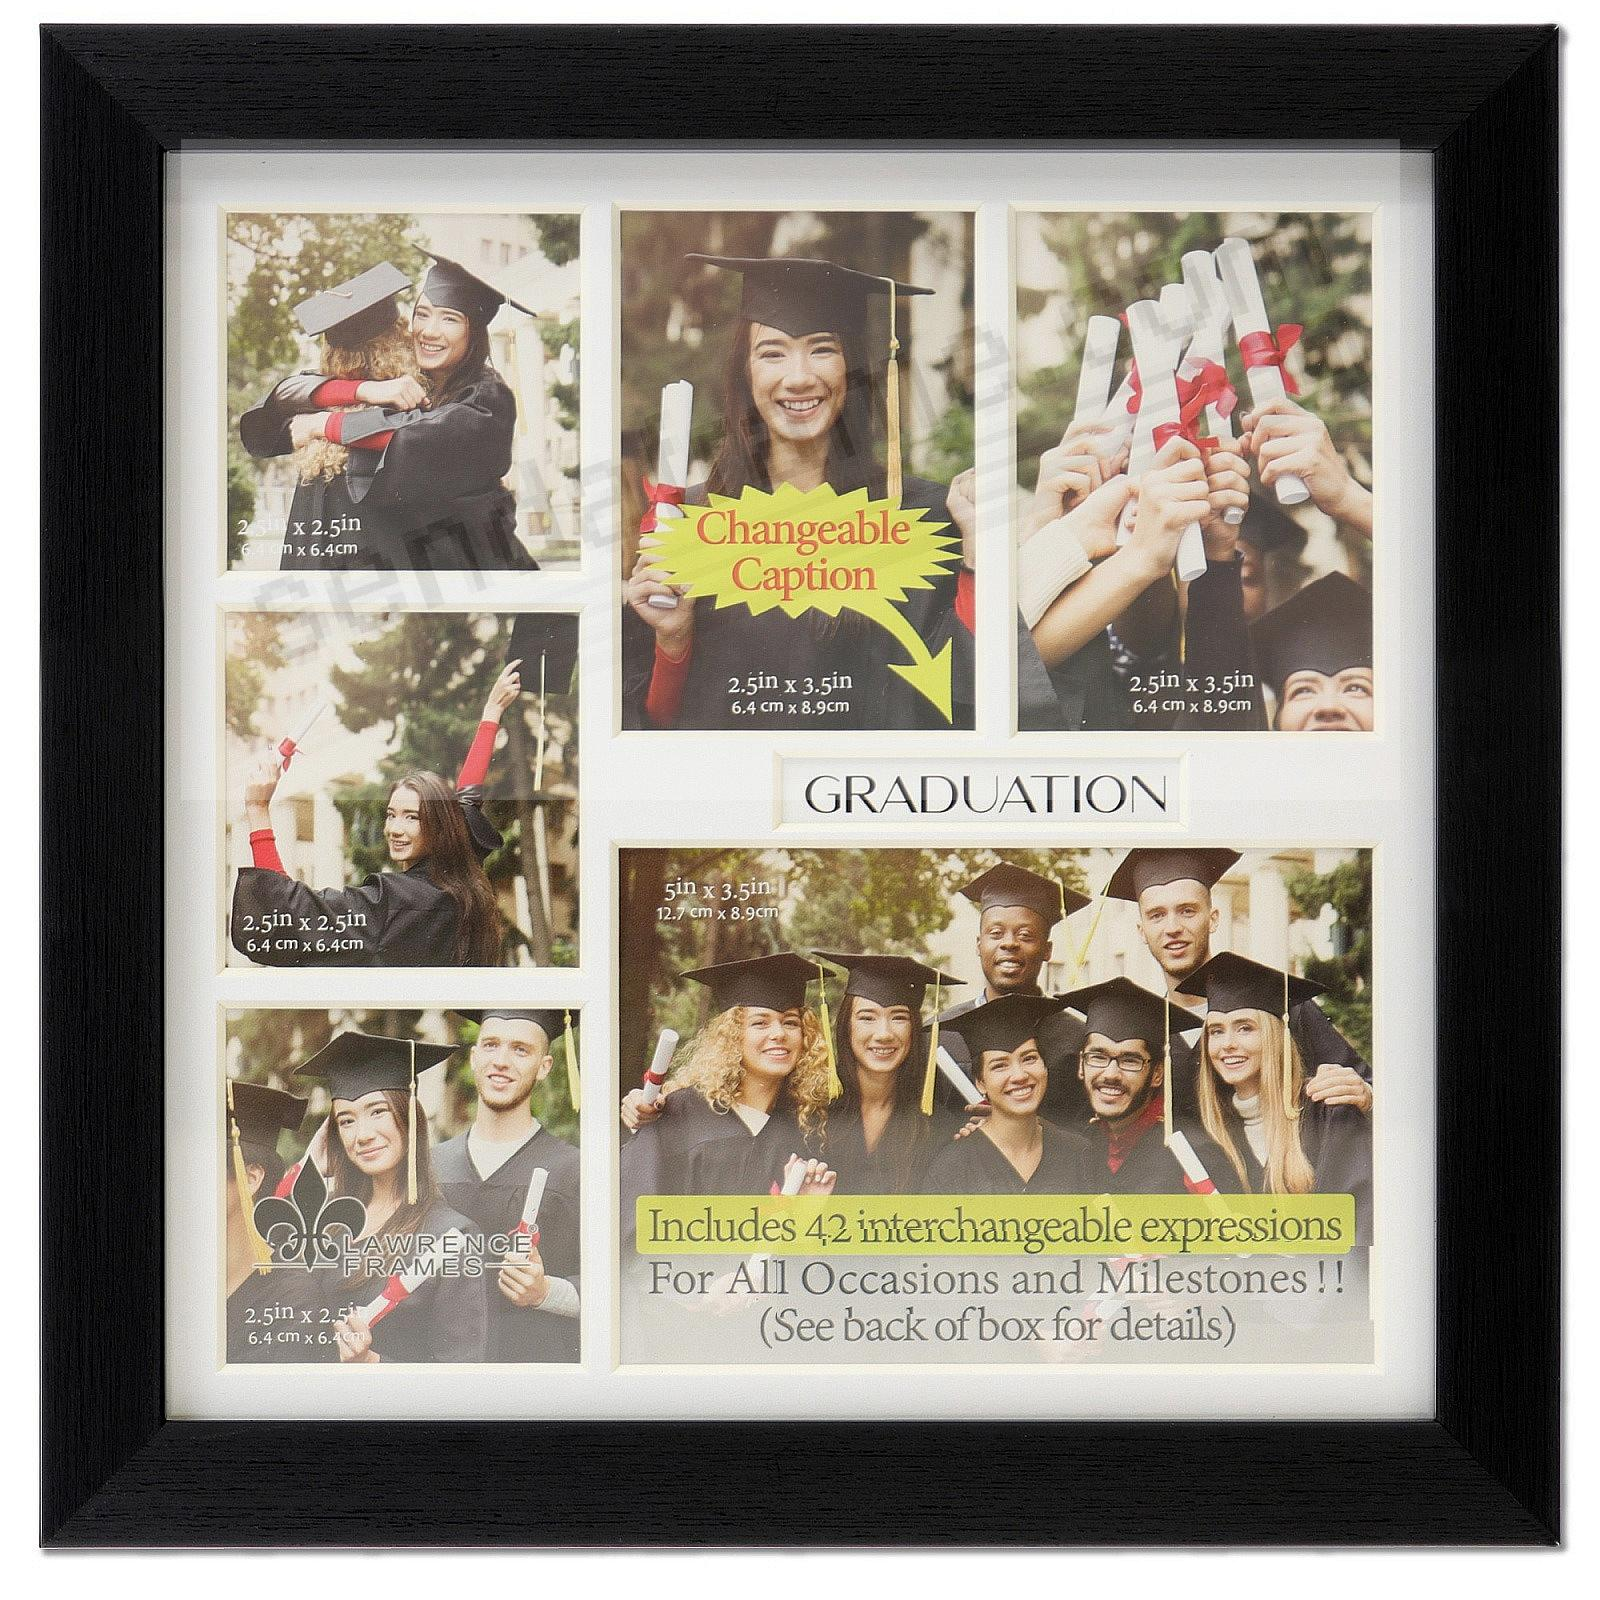 Ebony-Black Special Occasion 6-opening Collage w/42 changeable captions